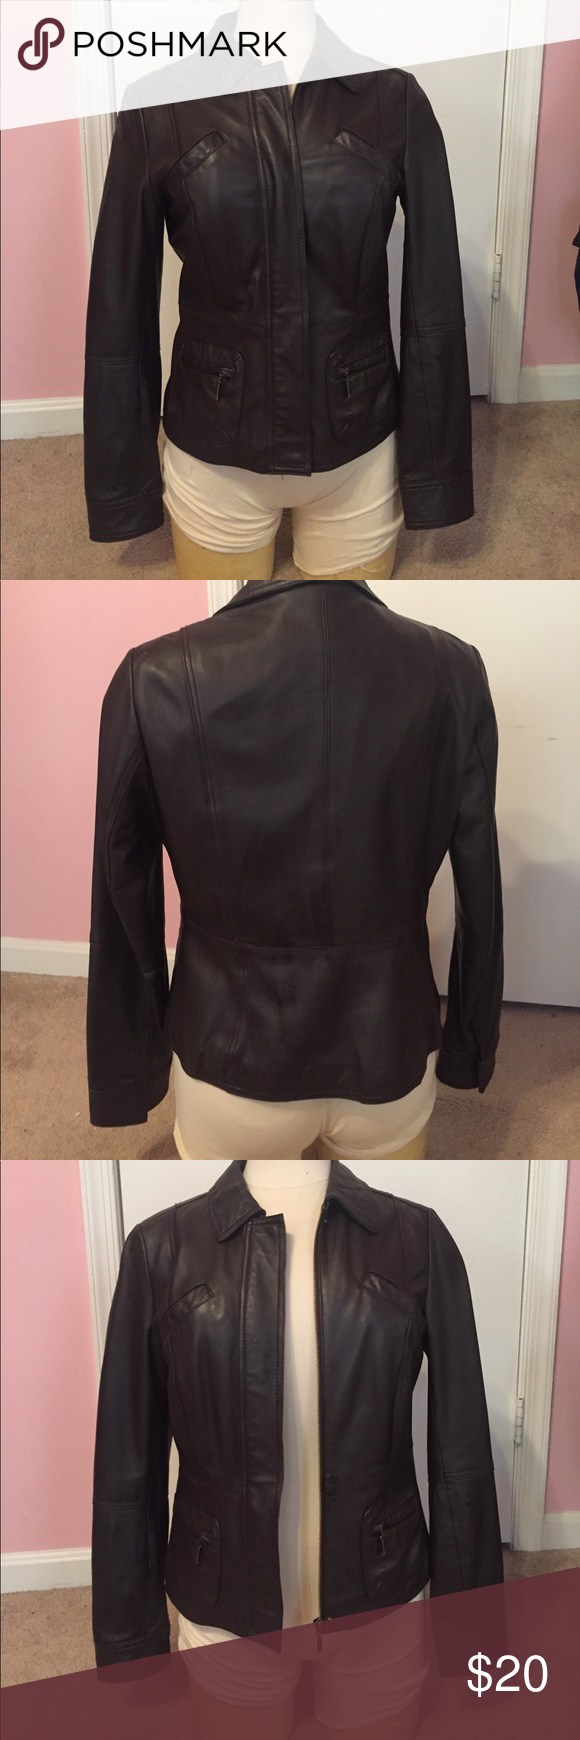 Dark brown faux leather jacket Used, good condition Max USA Jackets & Coats